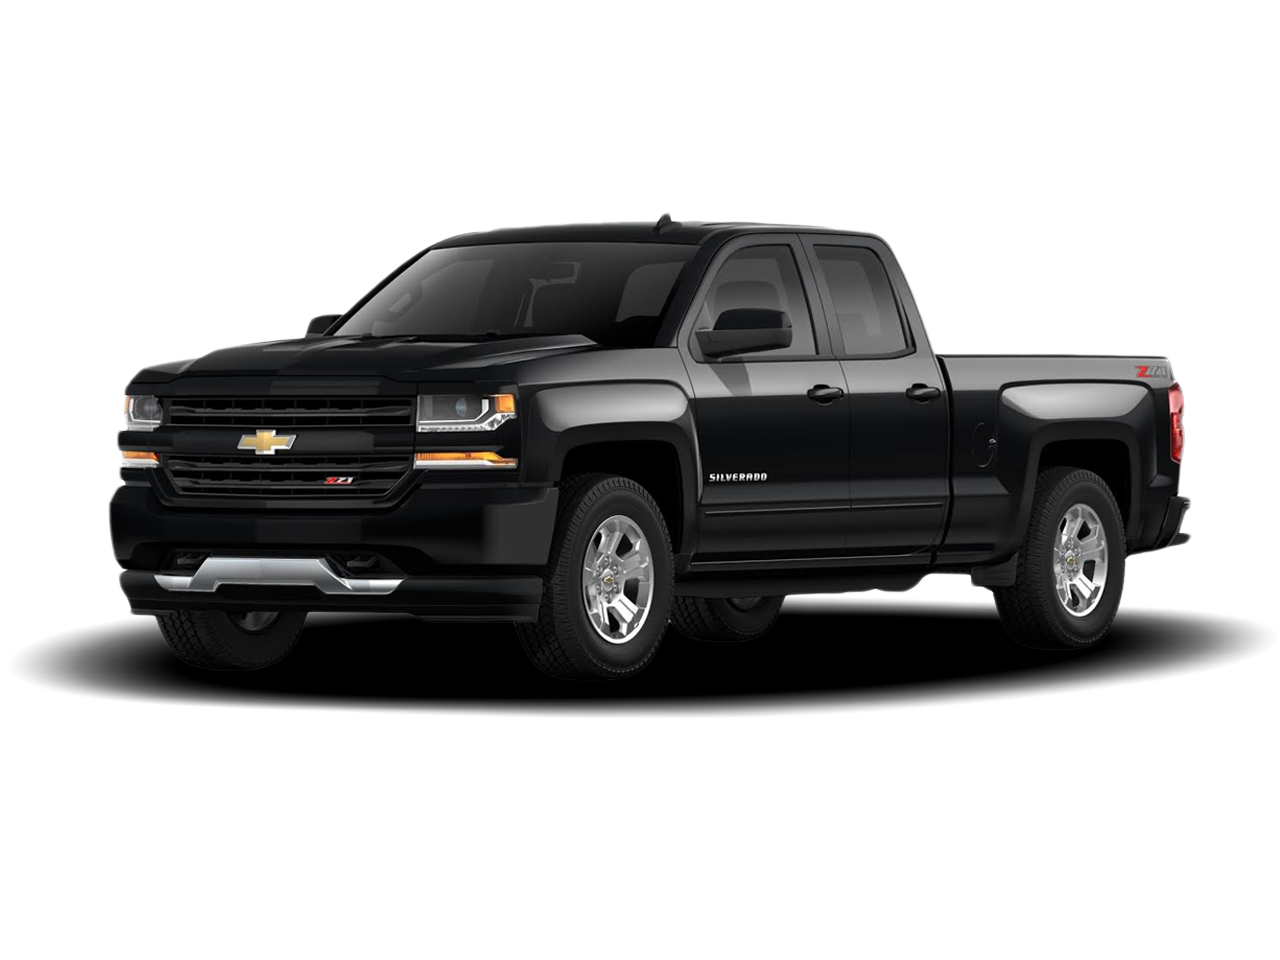 2019 Chevrolet Silverado 1500LD for sale near San Antonio, TX.